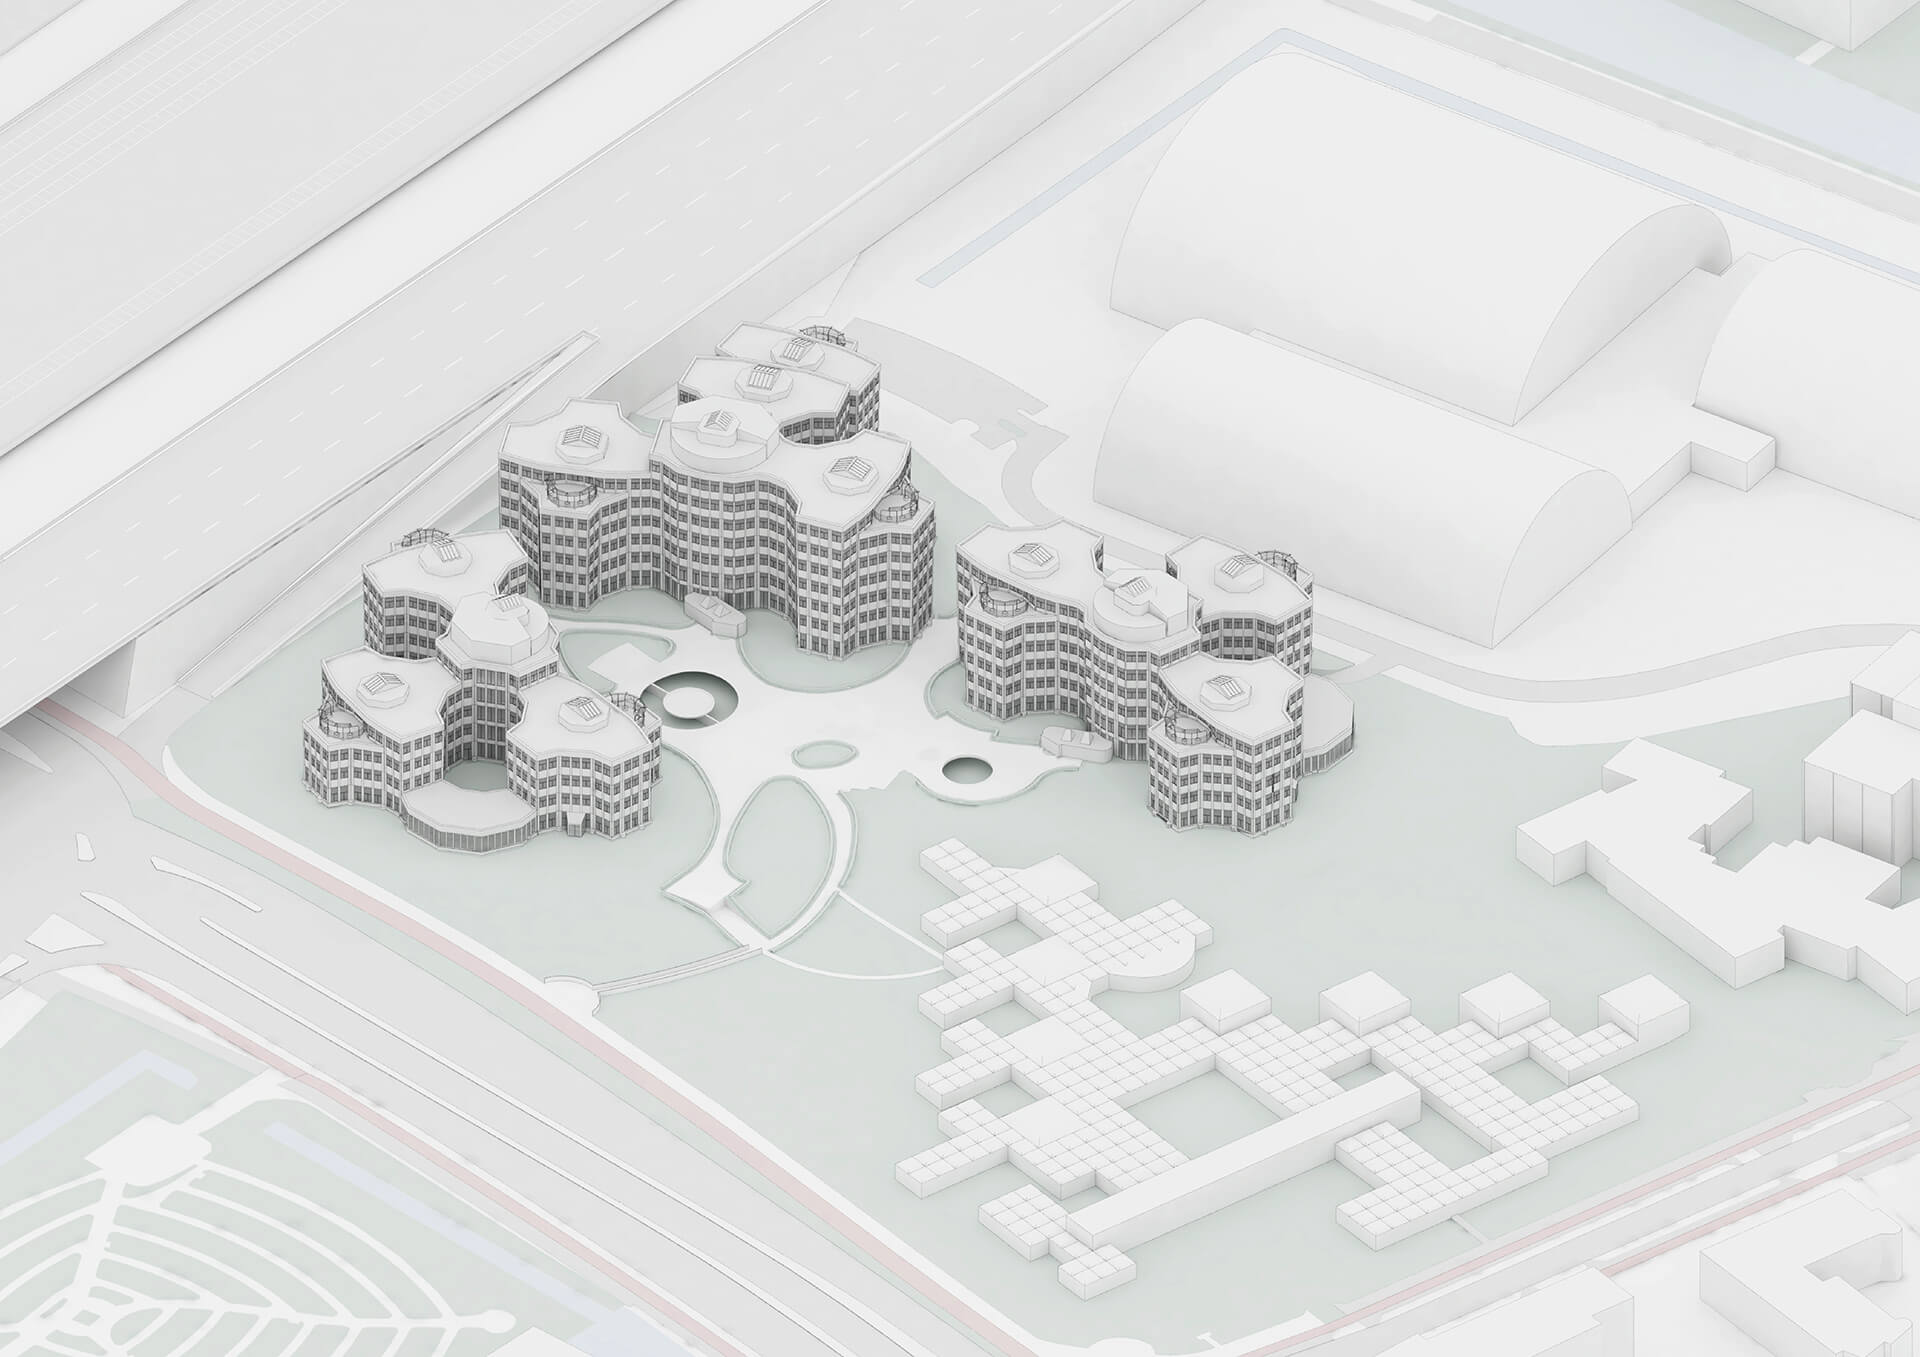 The monumental ensemble of the existing office complex | Tripolis Office Complex | MVRDV | STIRworld